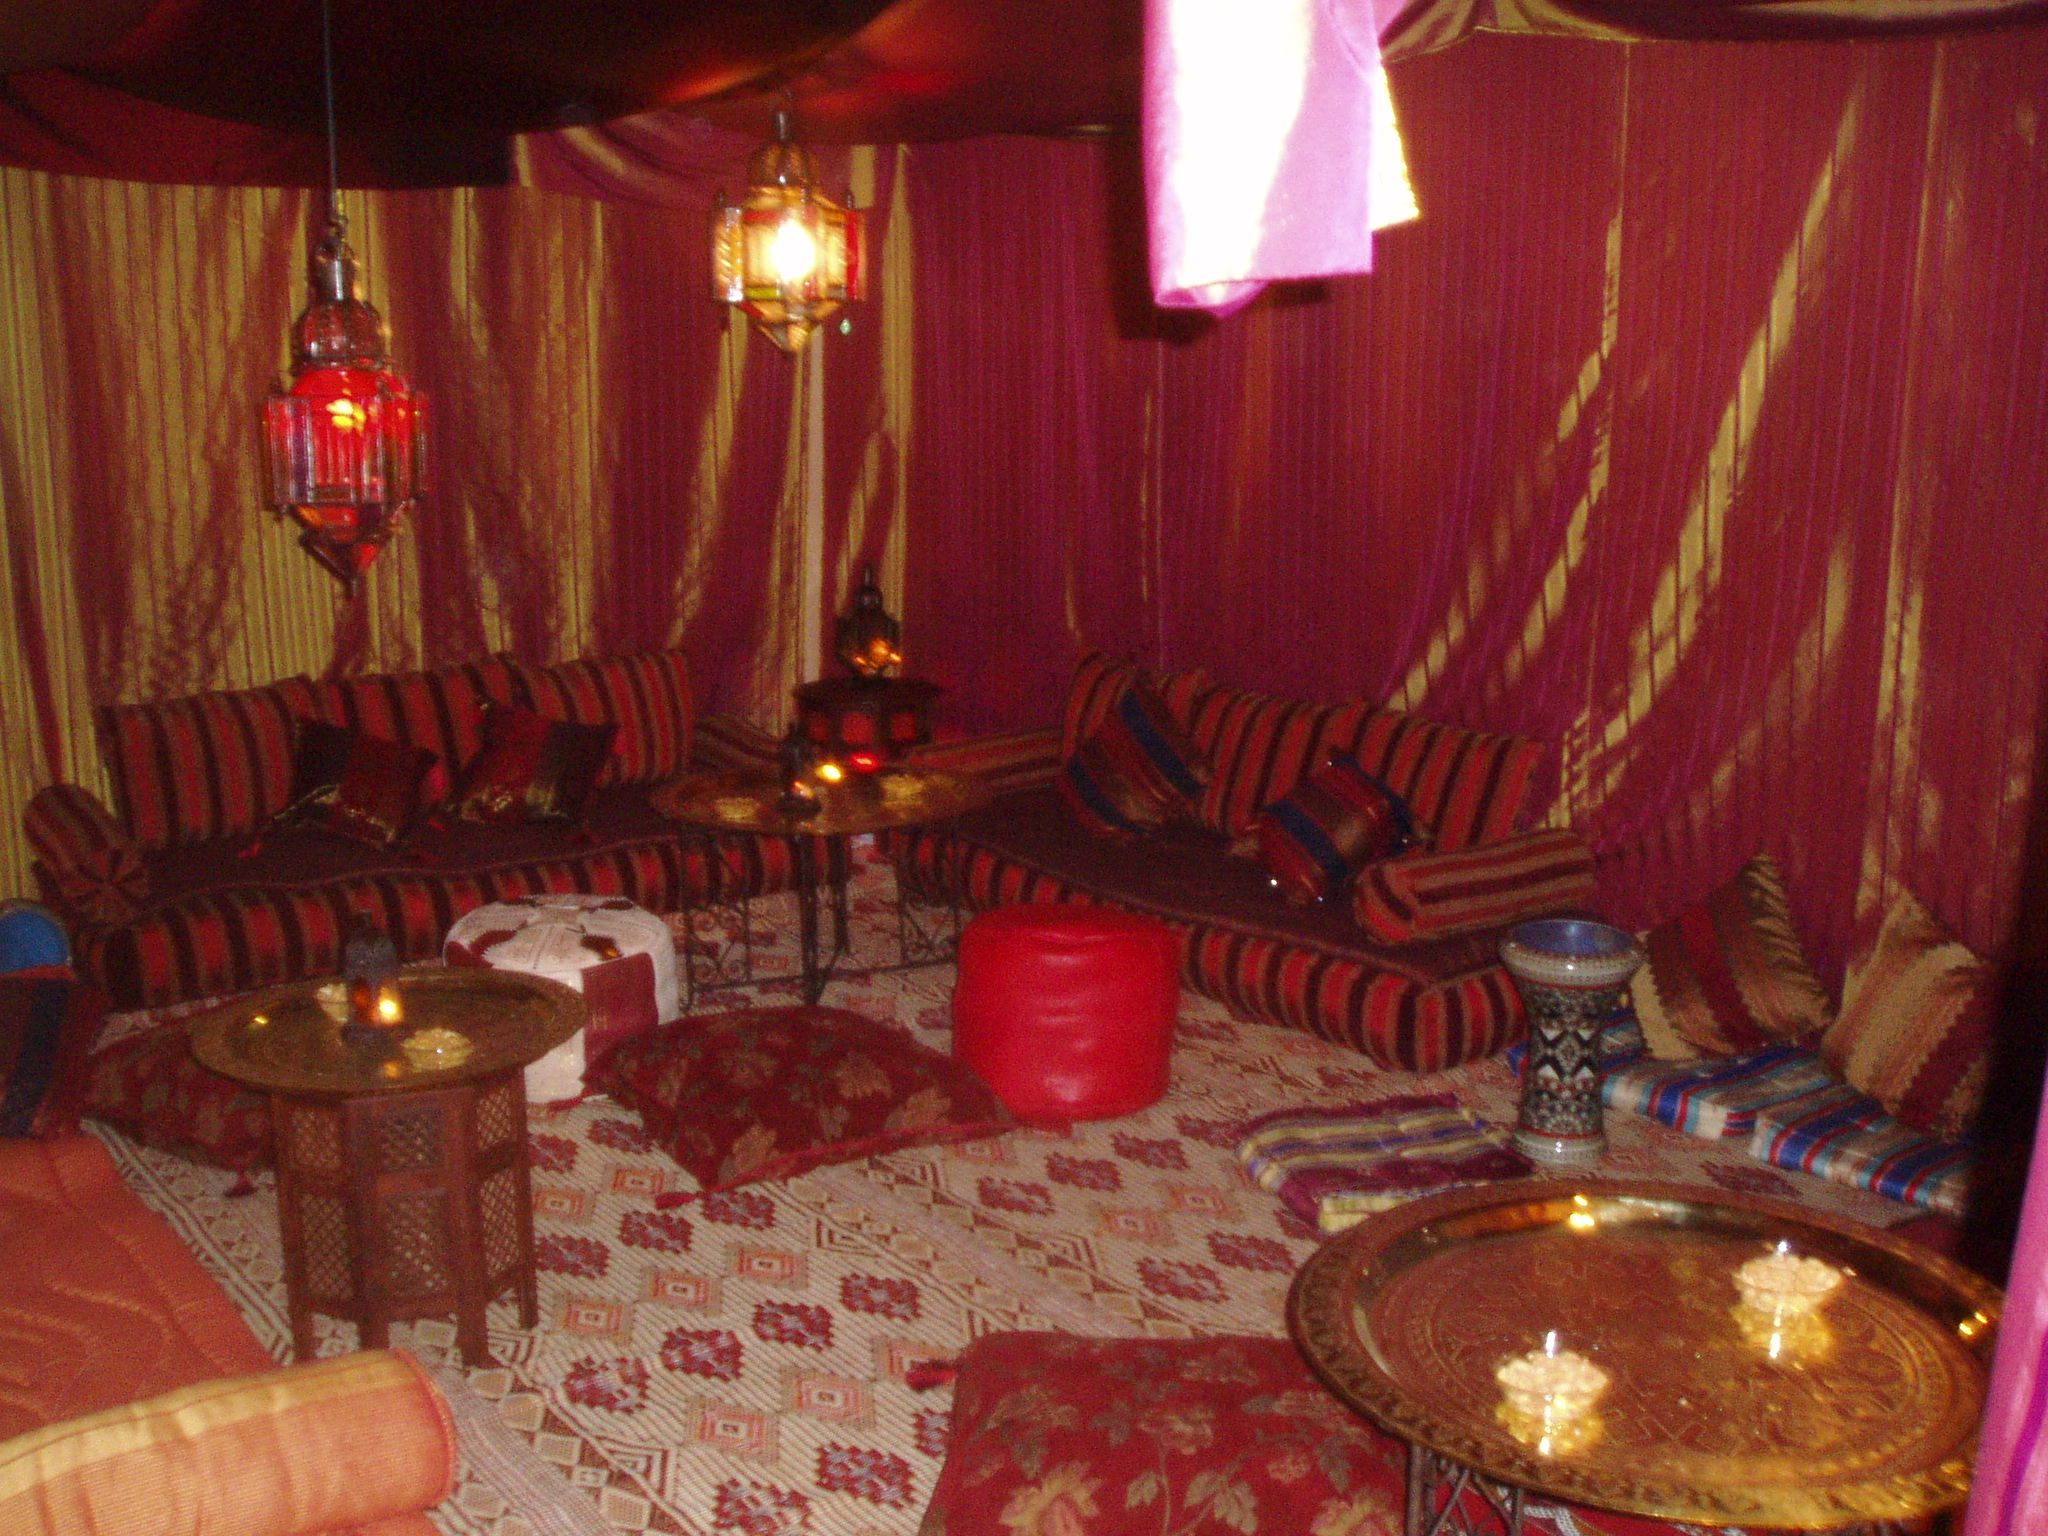 moroccan+decorating+ideas | moroccan decor ideas for a party5